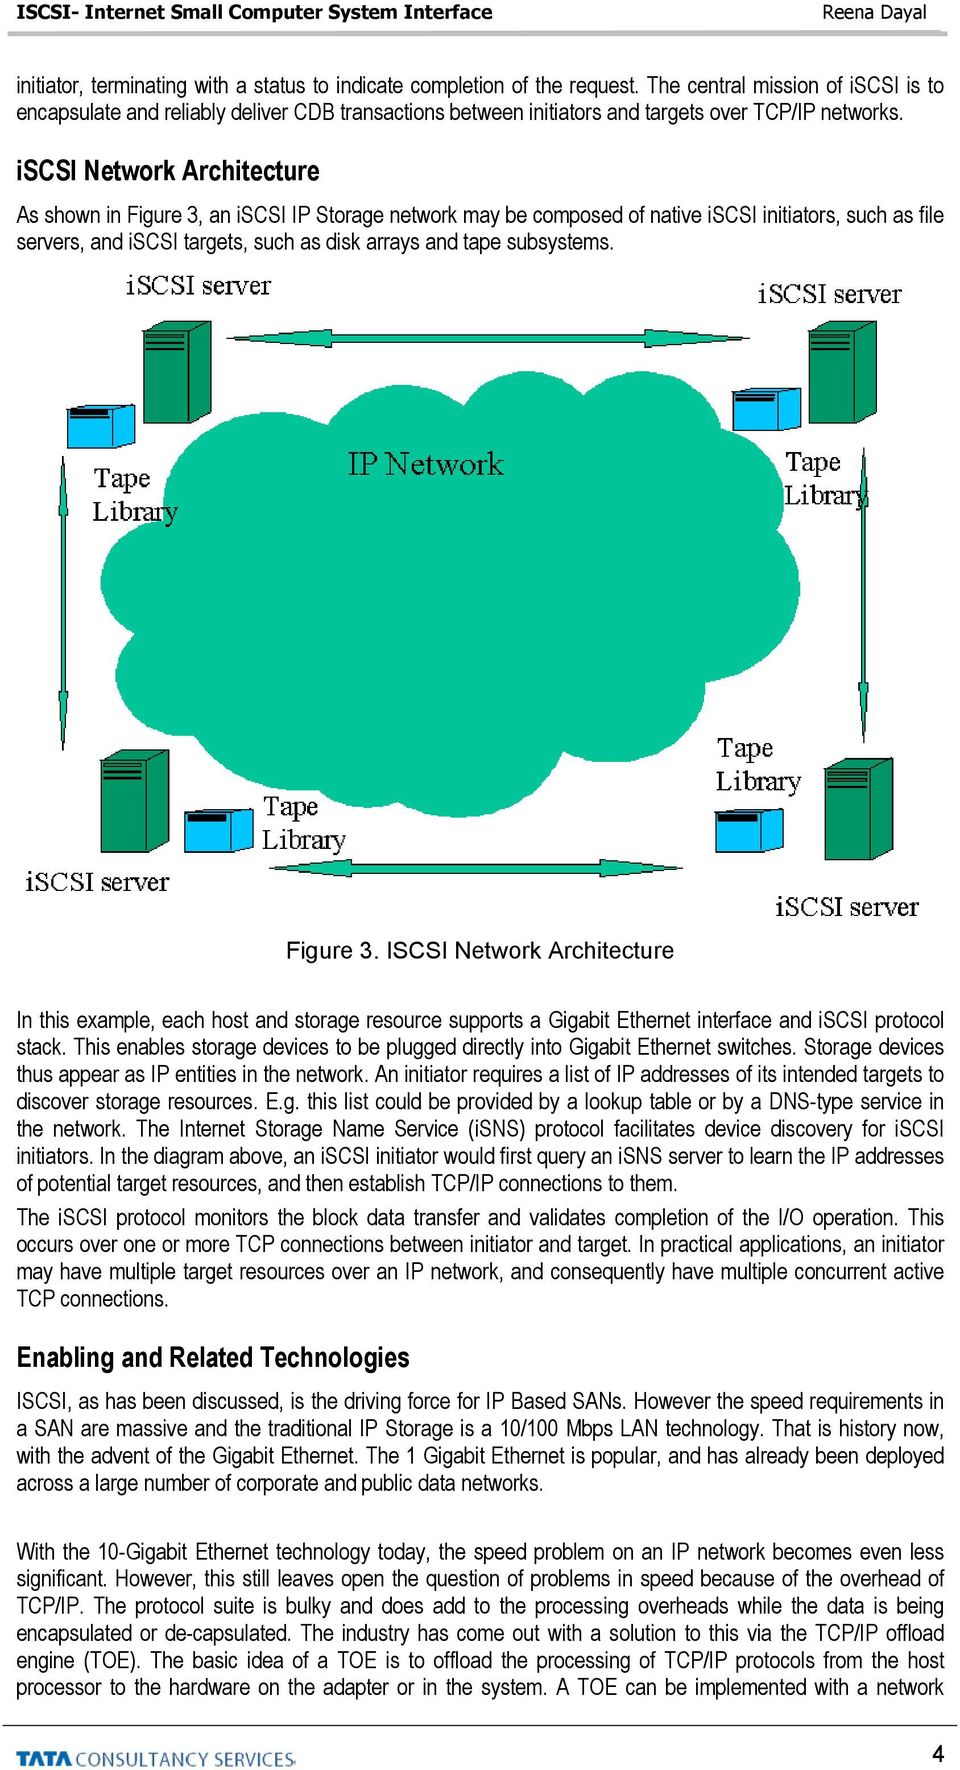 iscsi Network Architecture As shown in Figure 3, an iscsi IP Storage network may be composed of native iscsi initiators, such as file servers, and iscsi targets, such as disk arrays and tape